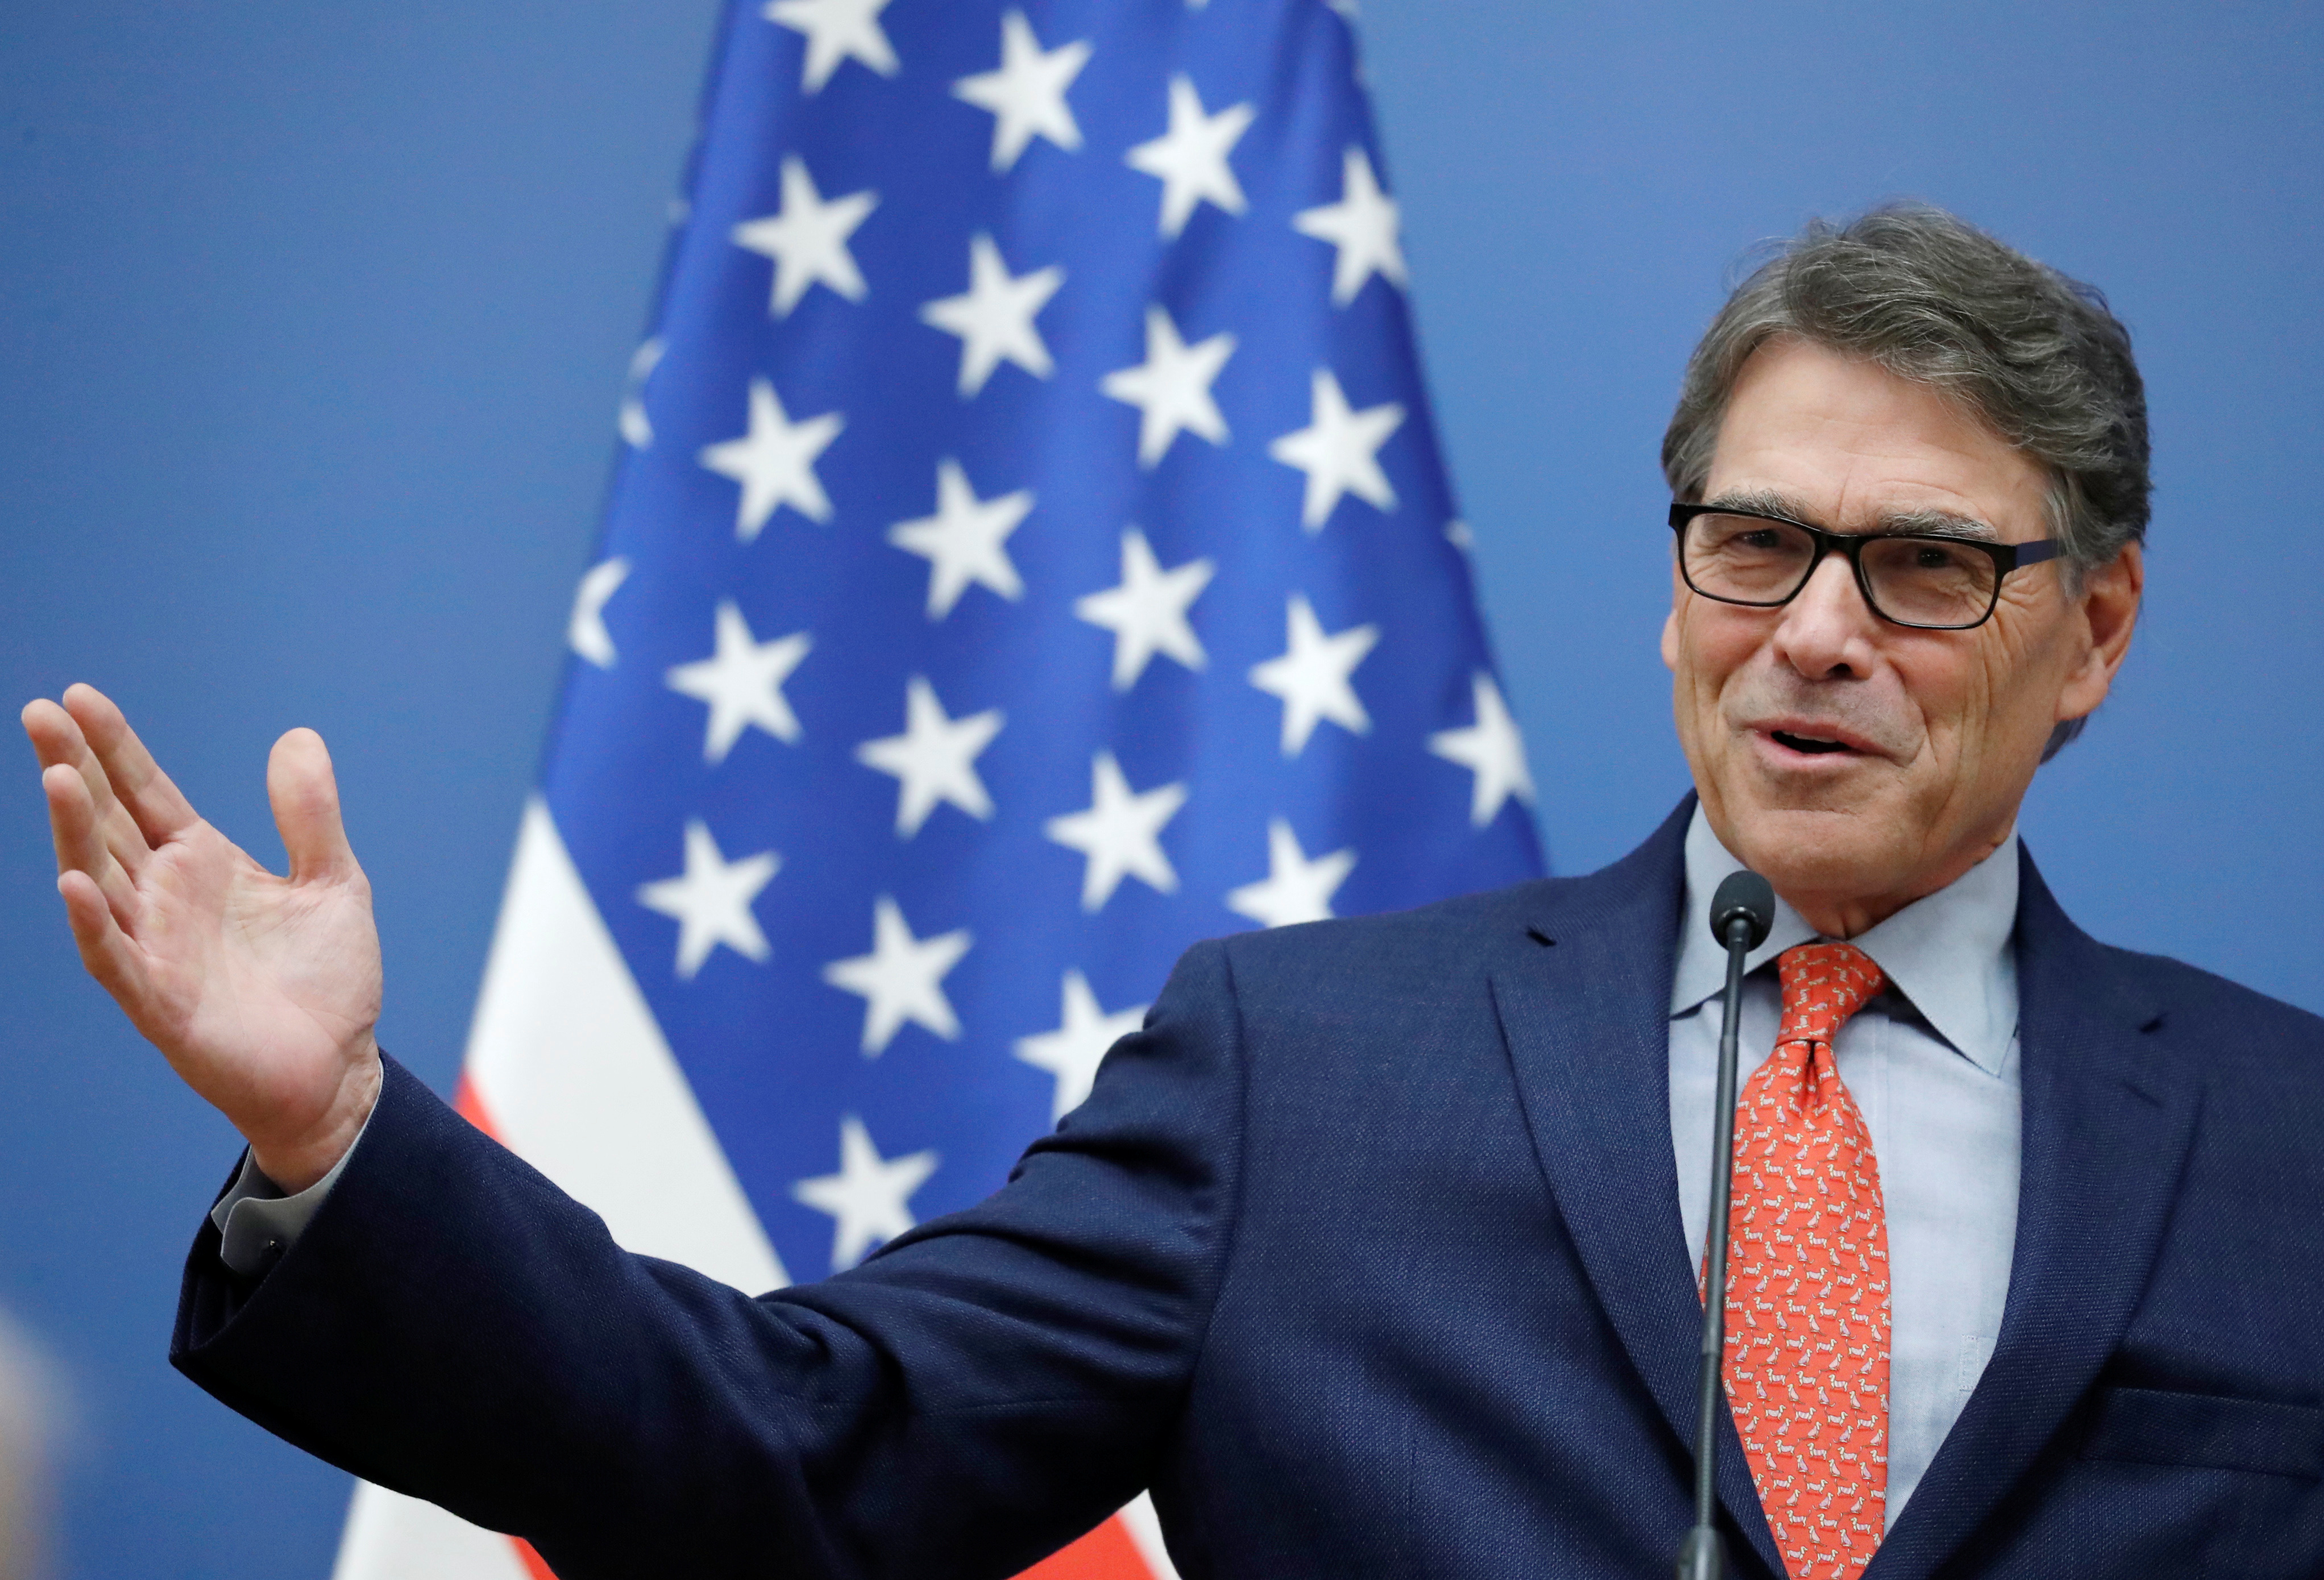 U.S. Energy Secretary Rick Perry attends a joint news conference with Hungarian Foreign Minister Peter Szijjarto in Budapest